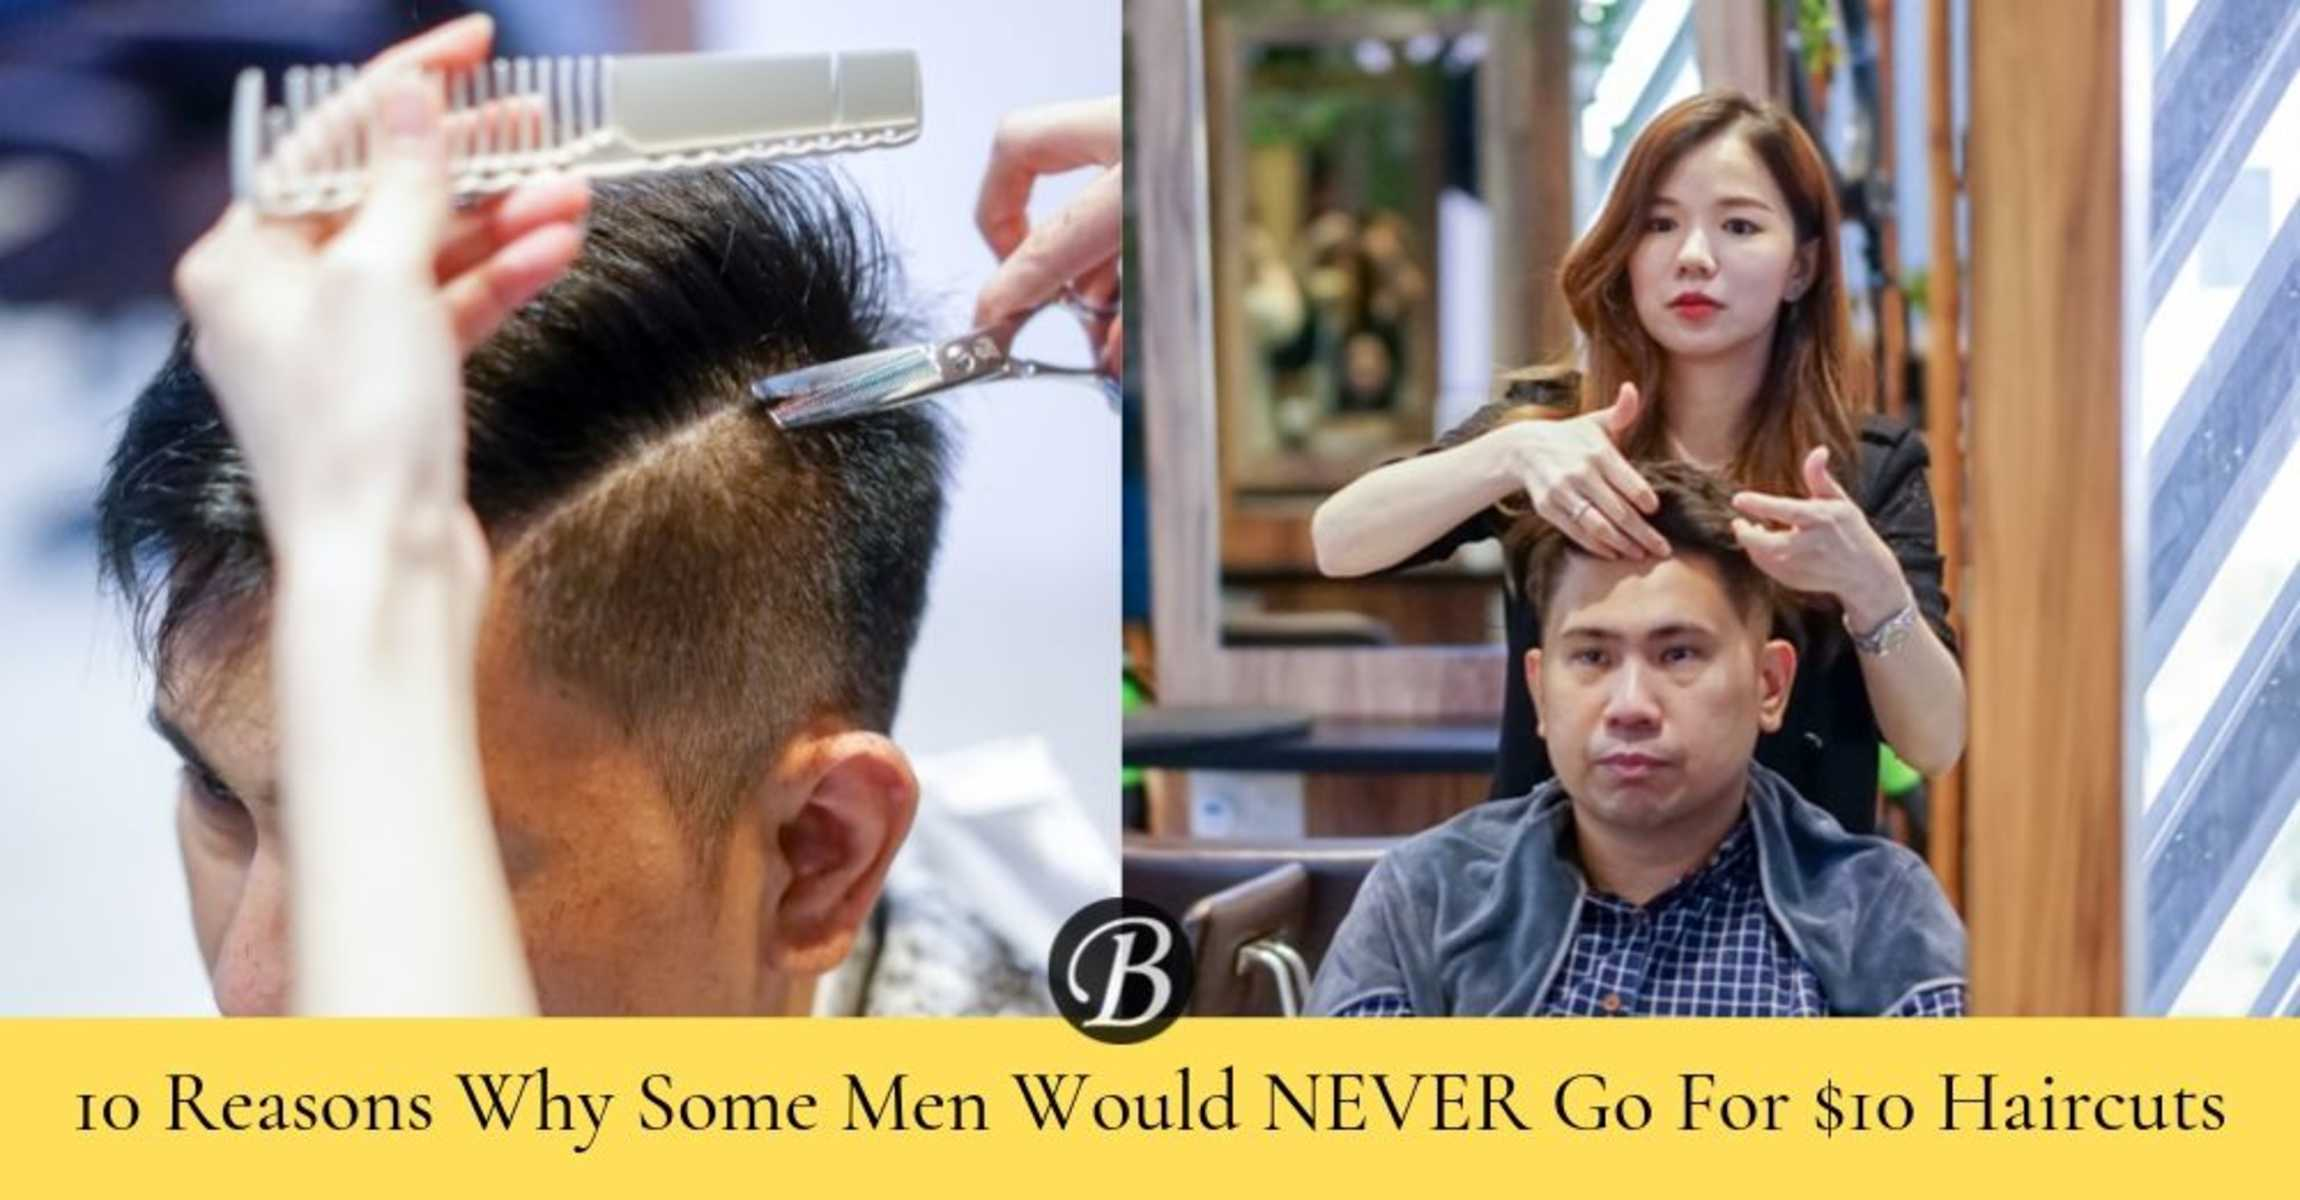 10 Reasons Why Some Men Would NEVER Go For $10 Haircuts